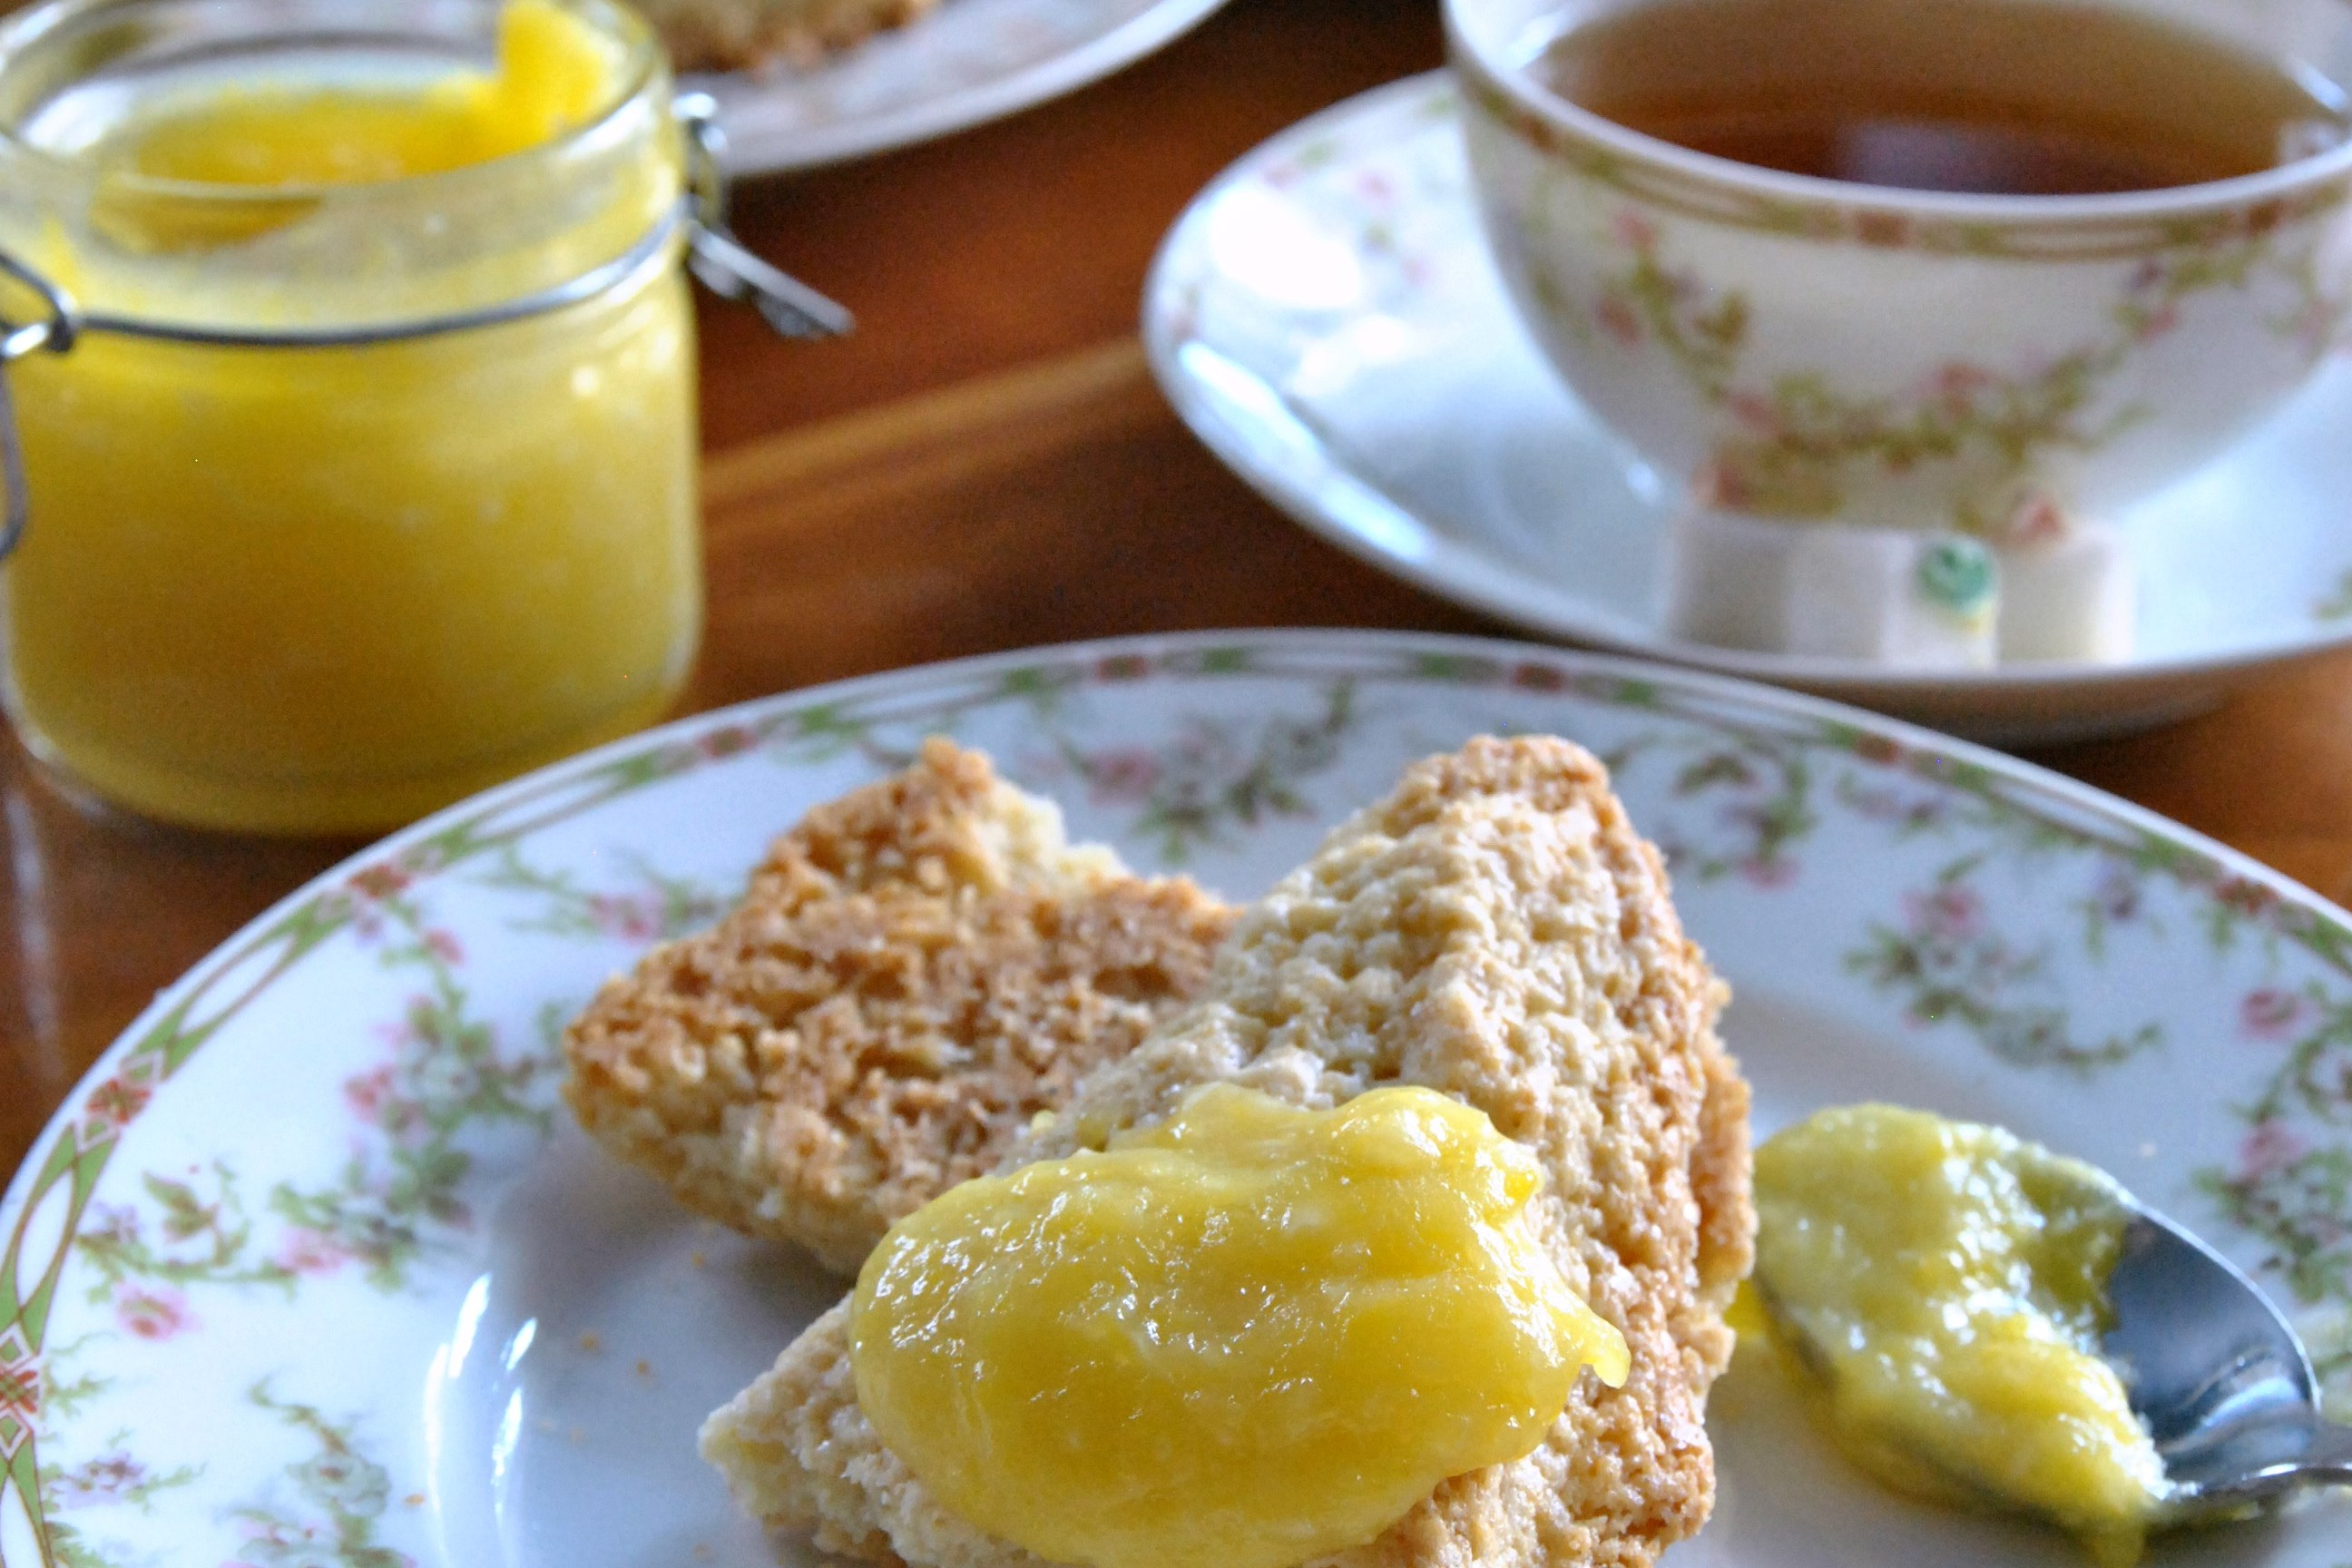 Foodtealife: Serve Afternoon Tea, The 'Downton Abbey' Way